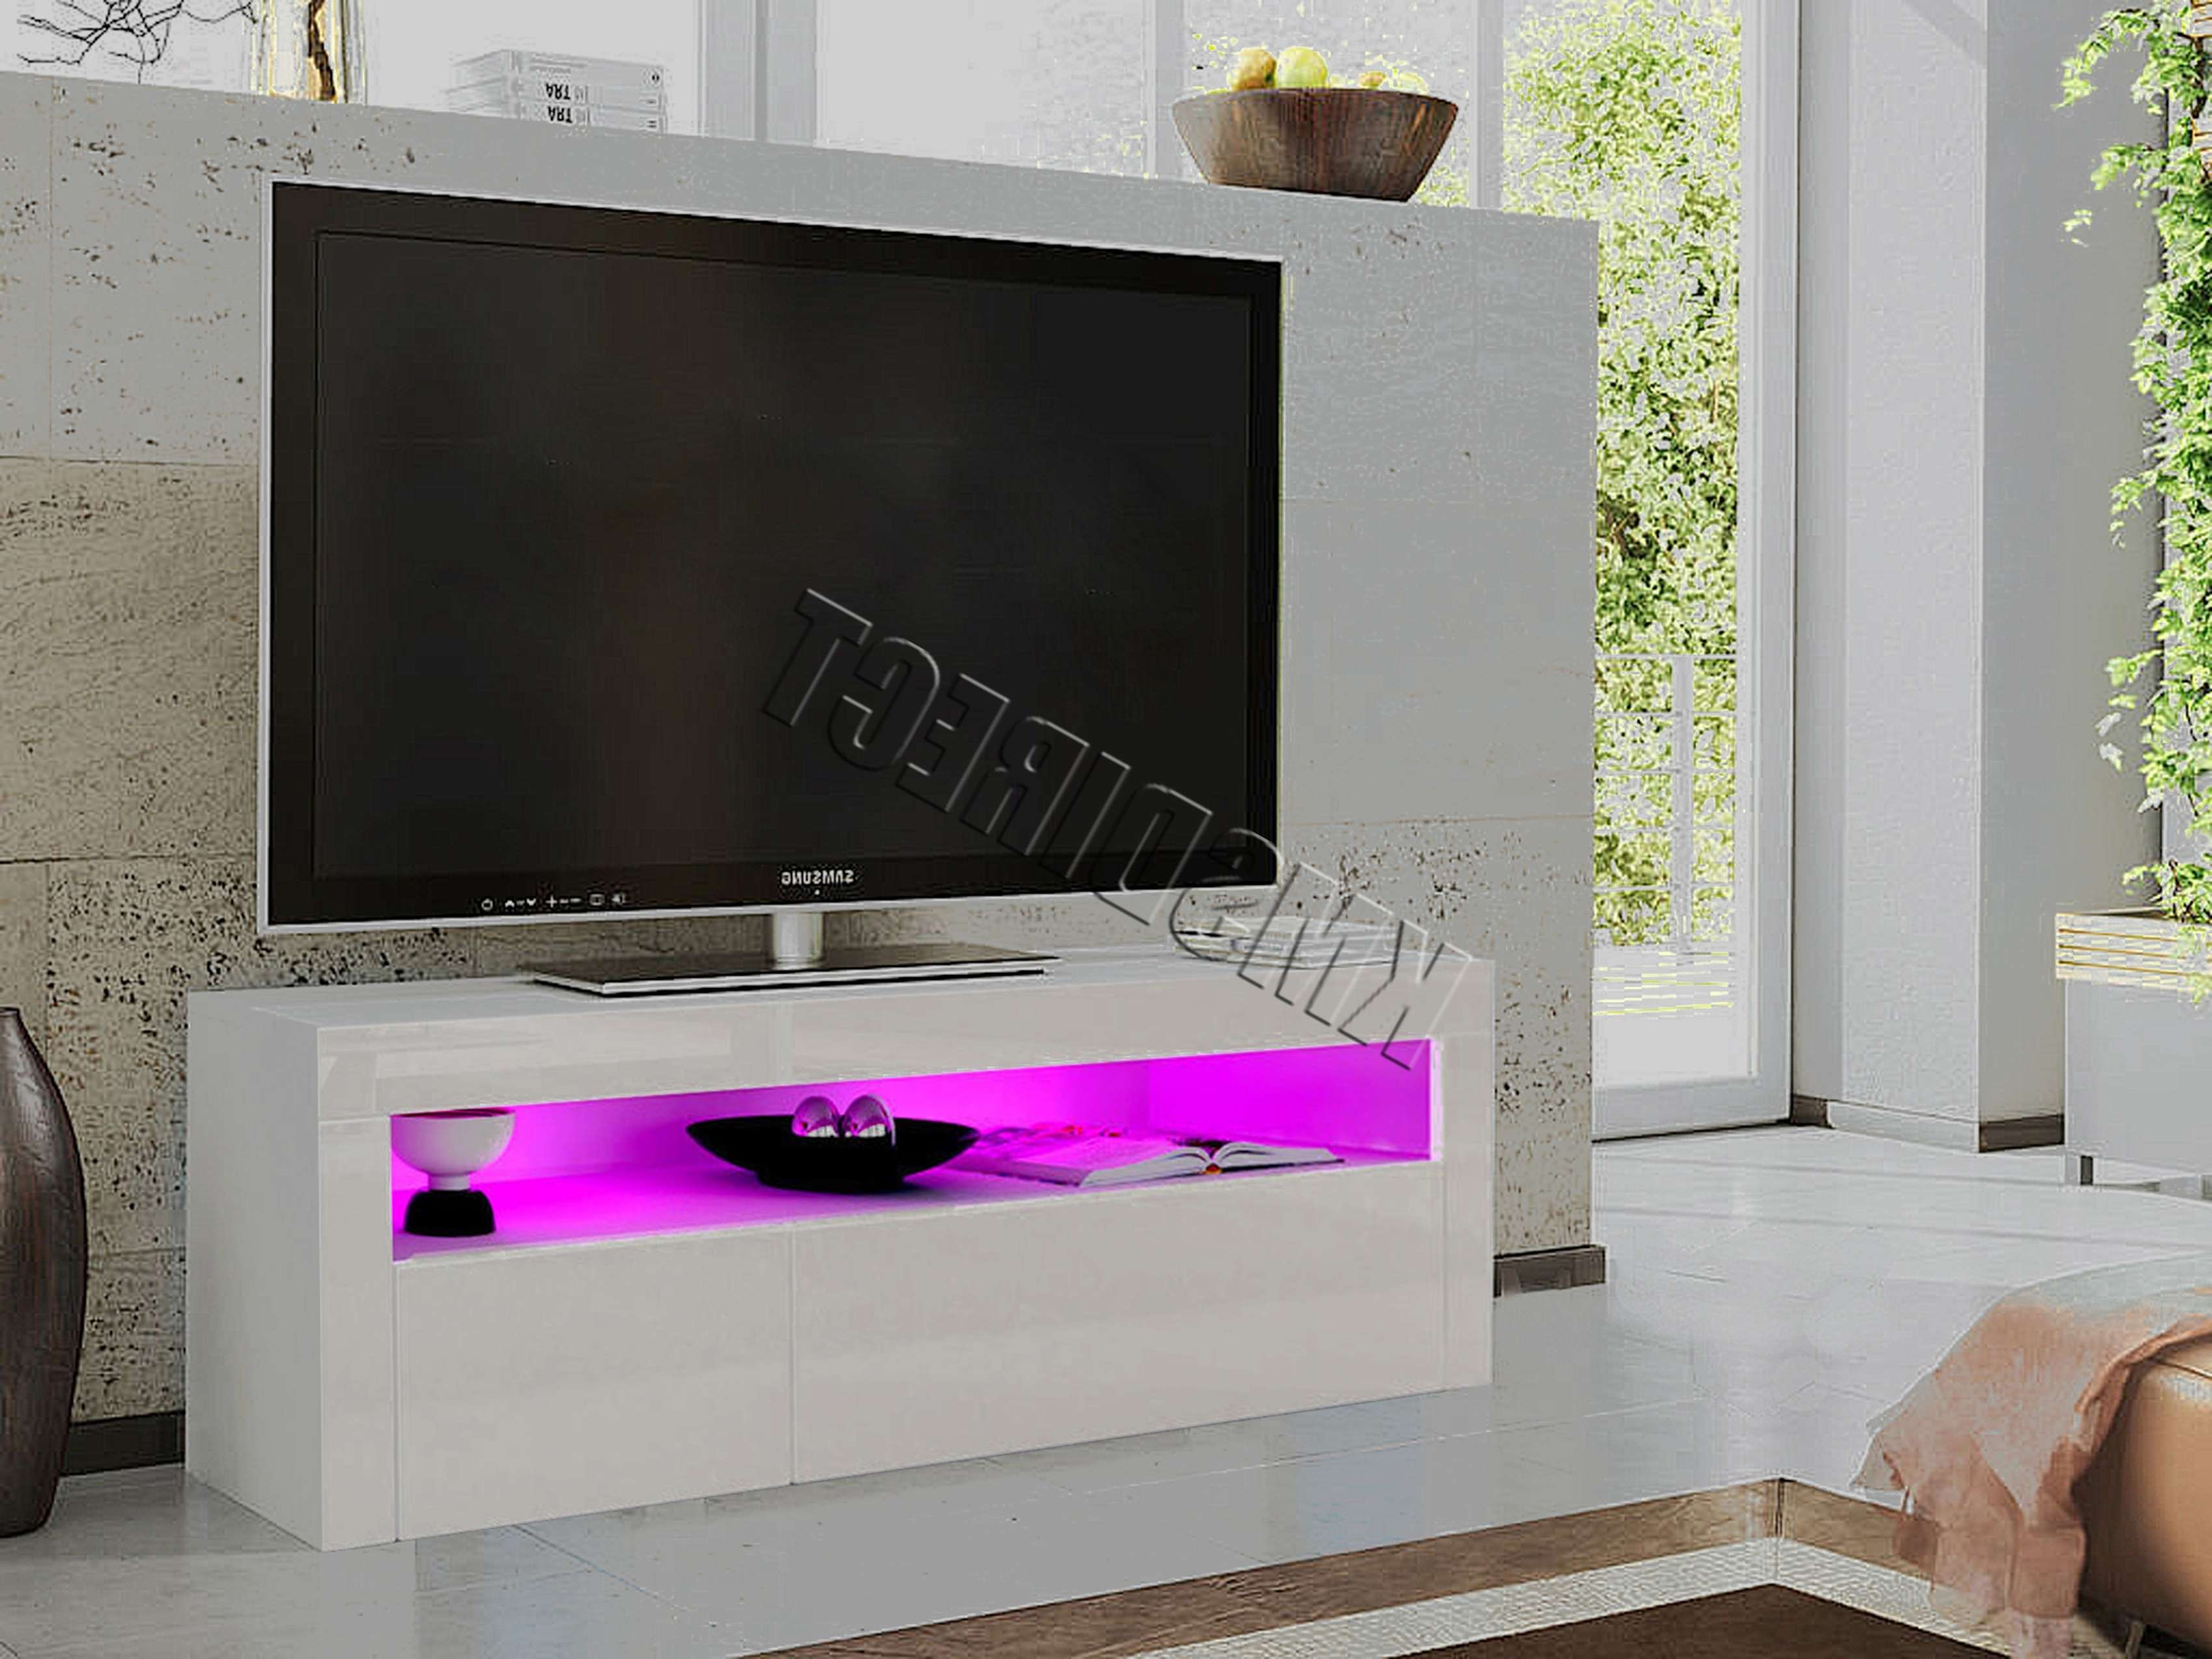 Foxhunter High Gloss Matt Tv Cabinet Unit Stand White Rgb Led Pertaining To Gloss Tv Stands (View 6 of 15)